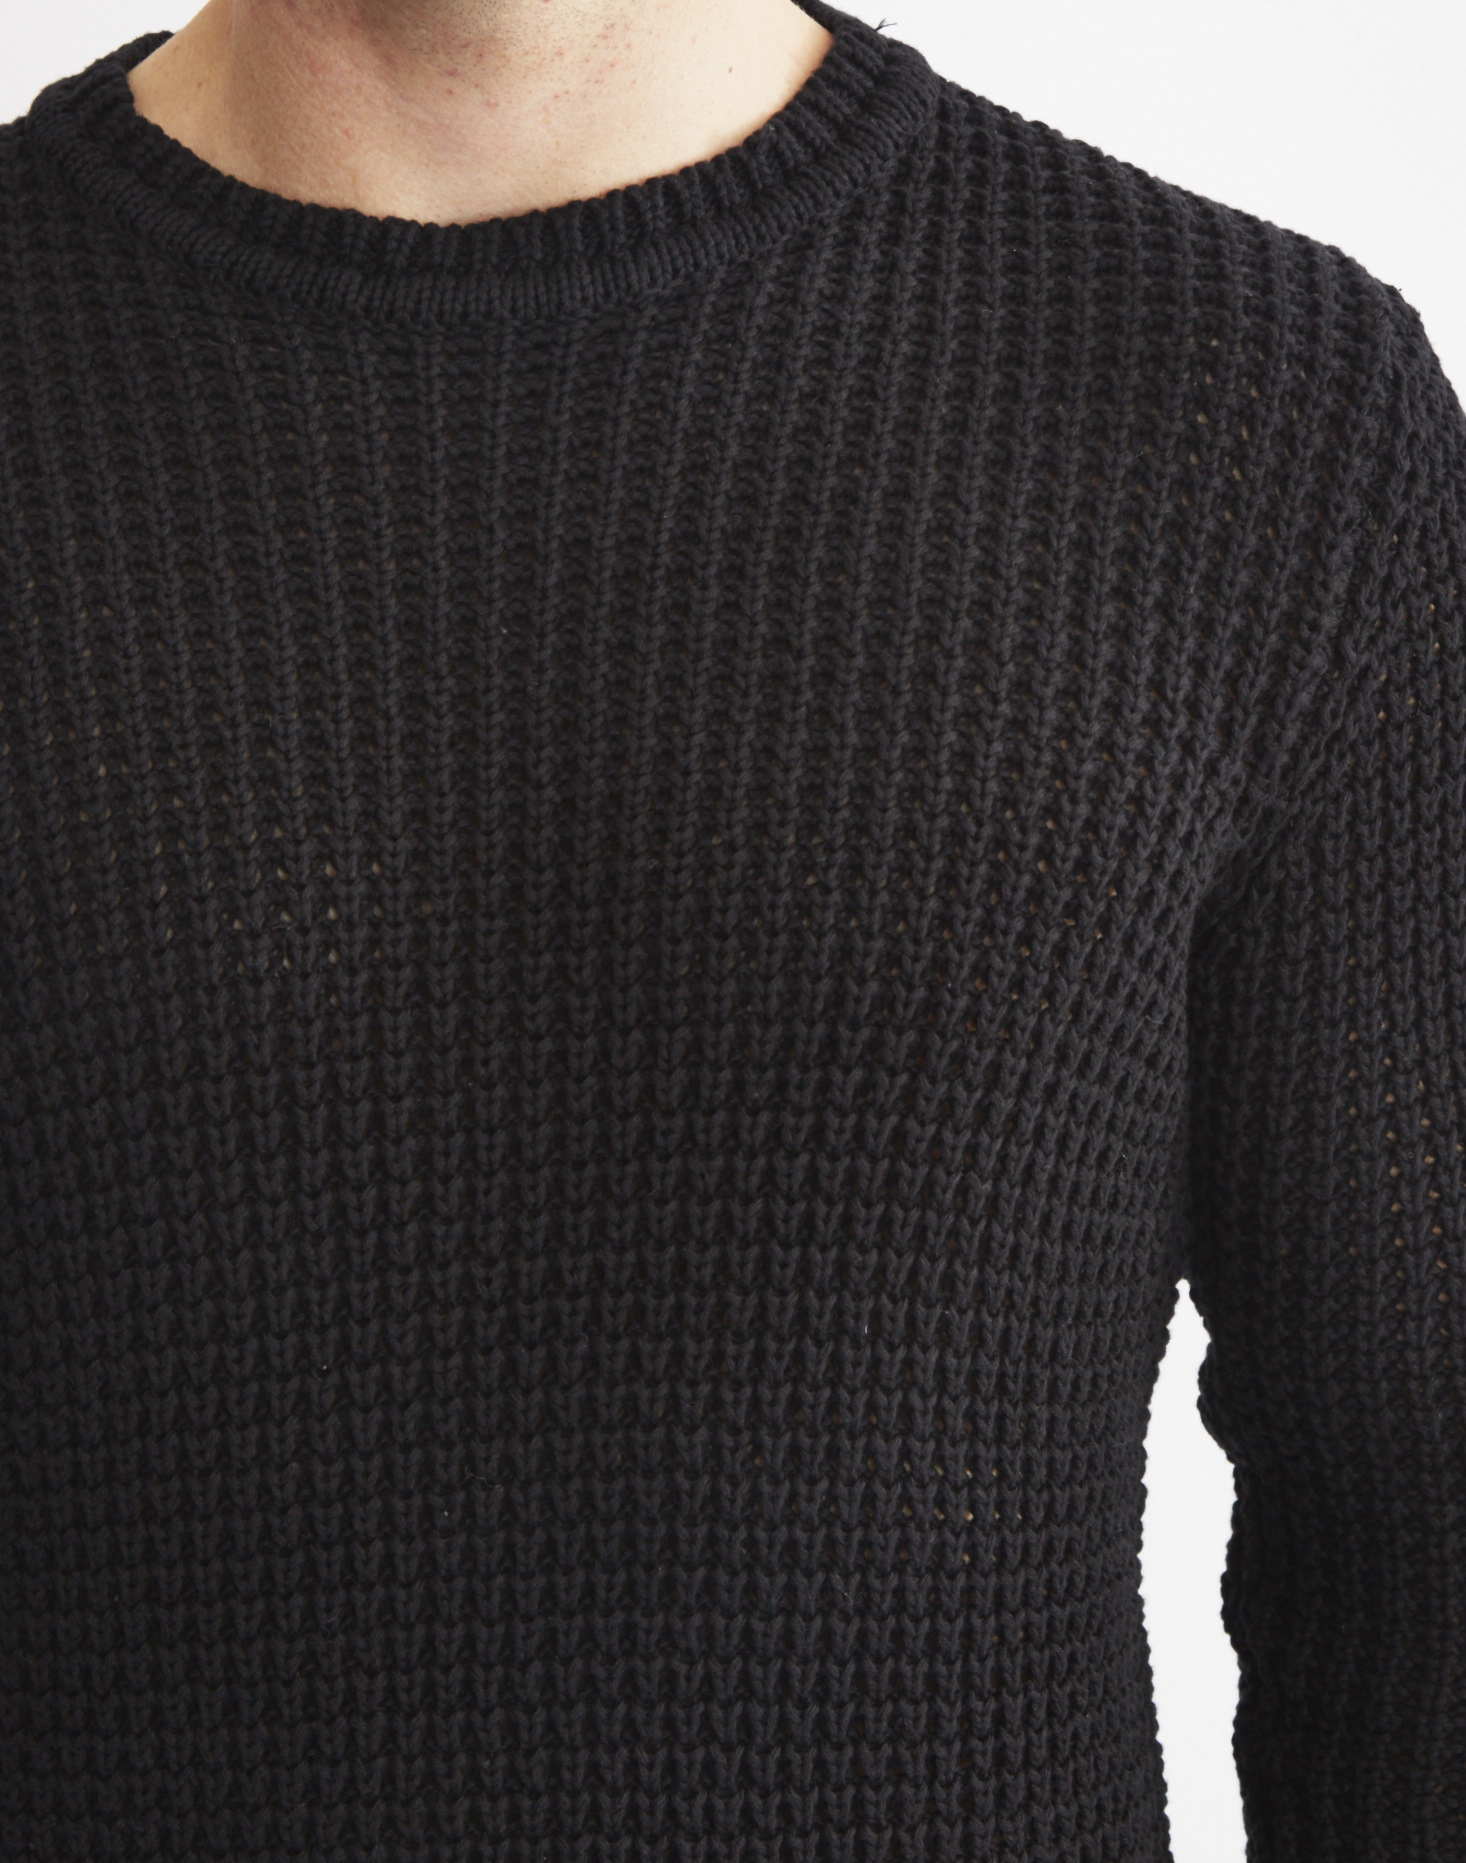 Lyst - Only   Sons Mens Knitted Jumper Black in Black for Men 893031fd3102